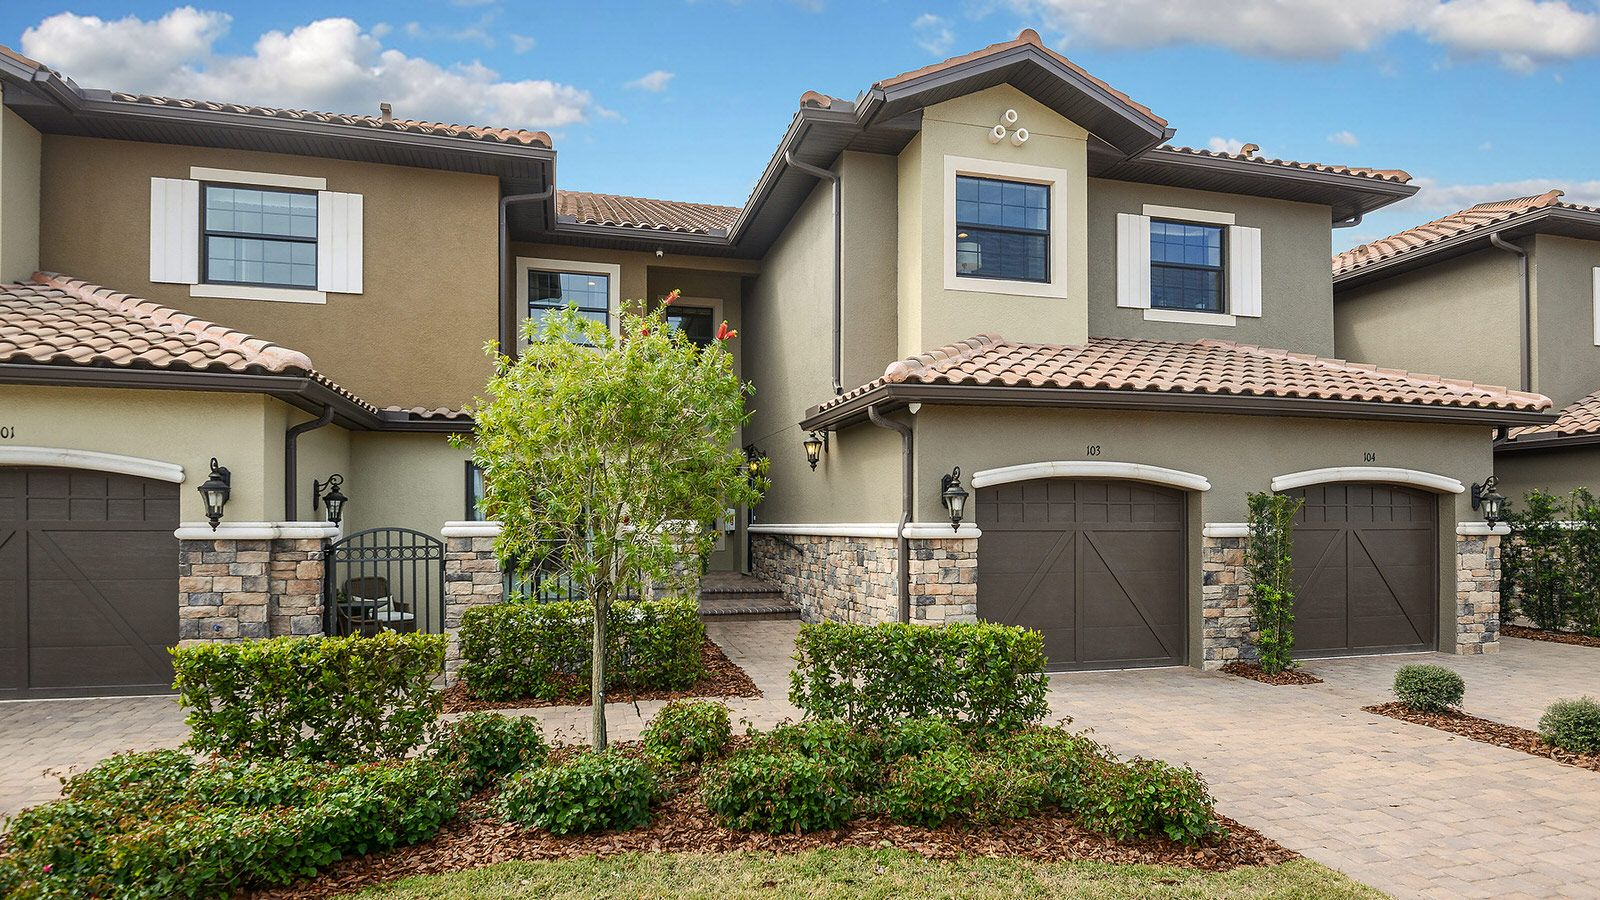 lakewood-ranch-bellisimo-4302-16x9